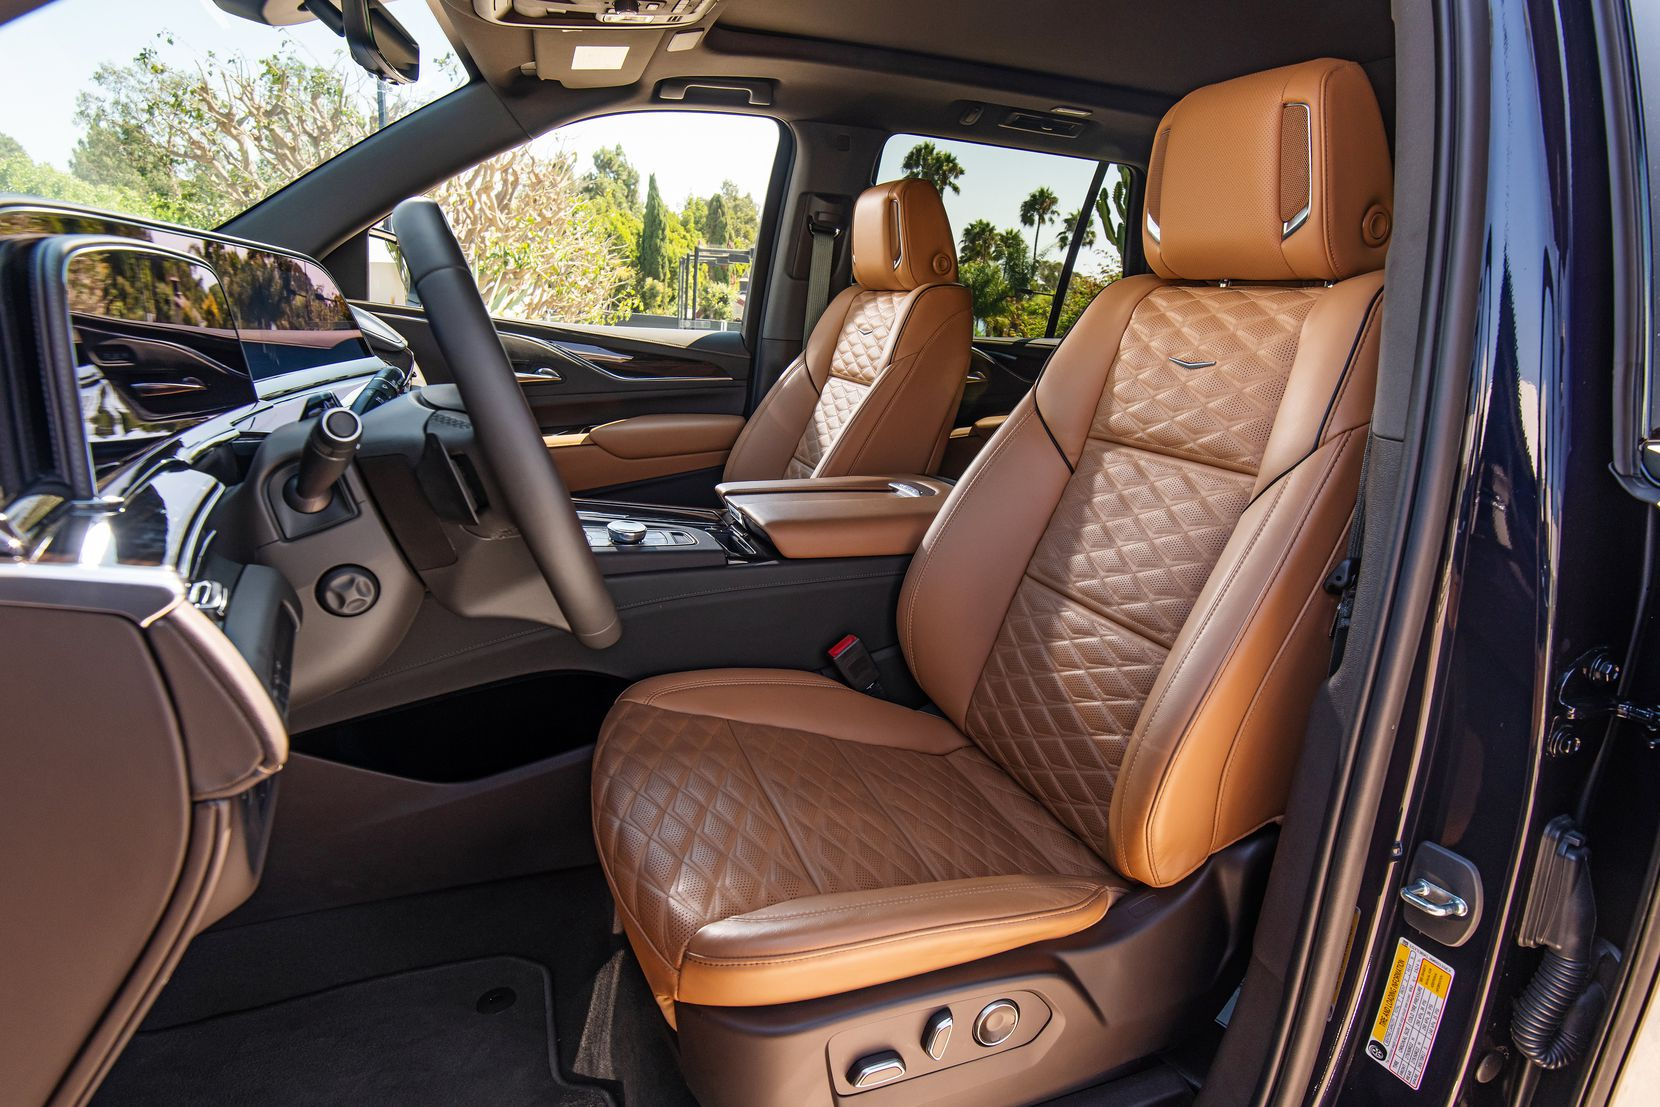 The 2021 Cadillac Escalade Brandy interior with Very Dark Atmosphere accents and full leather seats with faceted quilting.